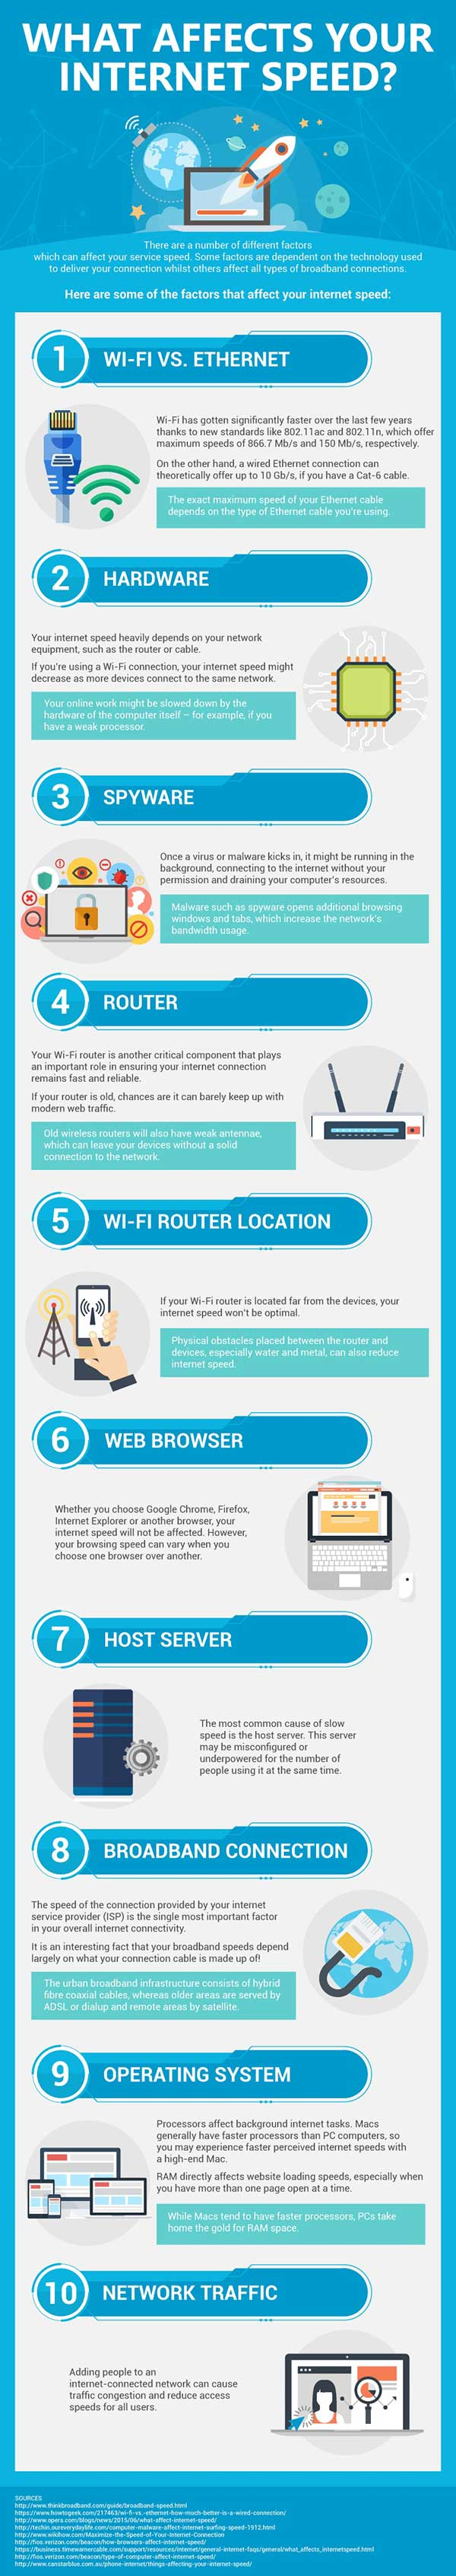 What Affects Your Internet Speed - Infographic